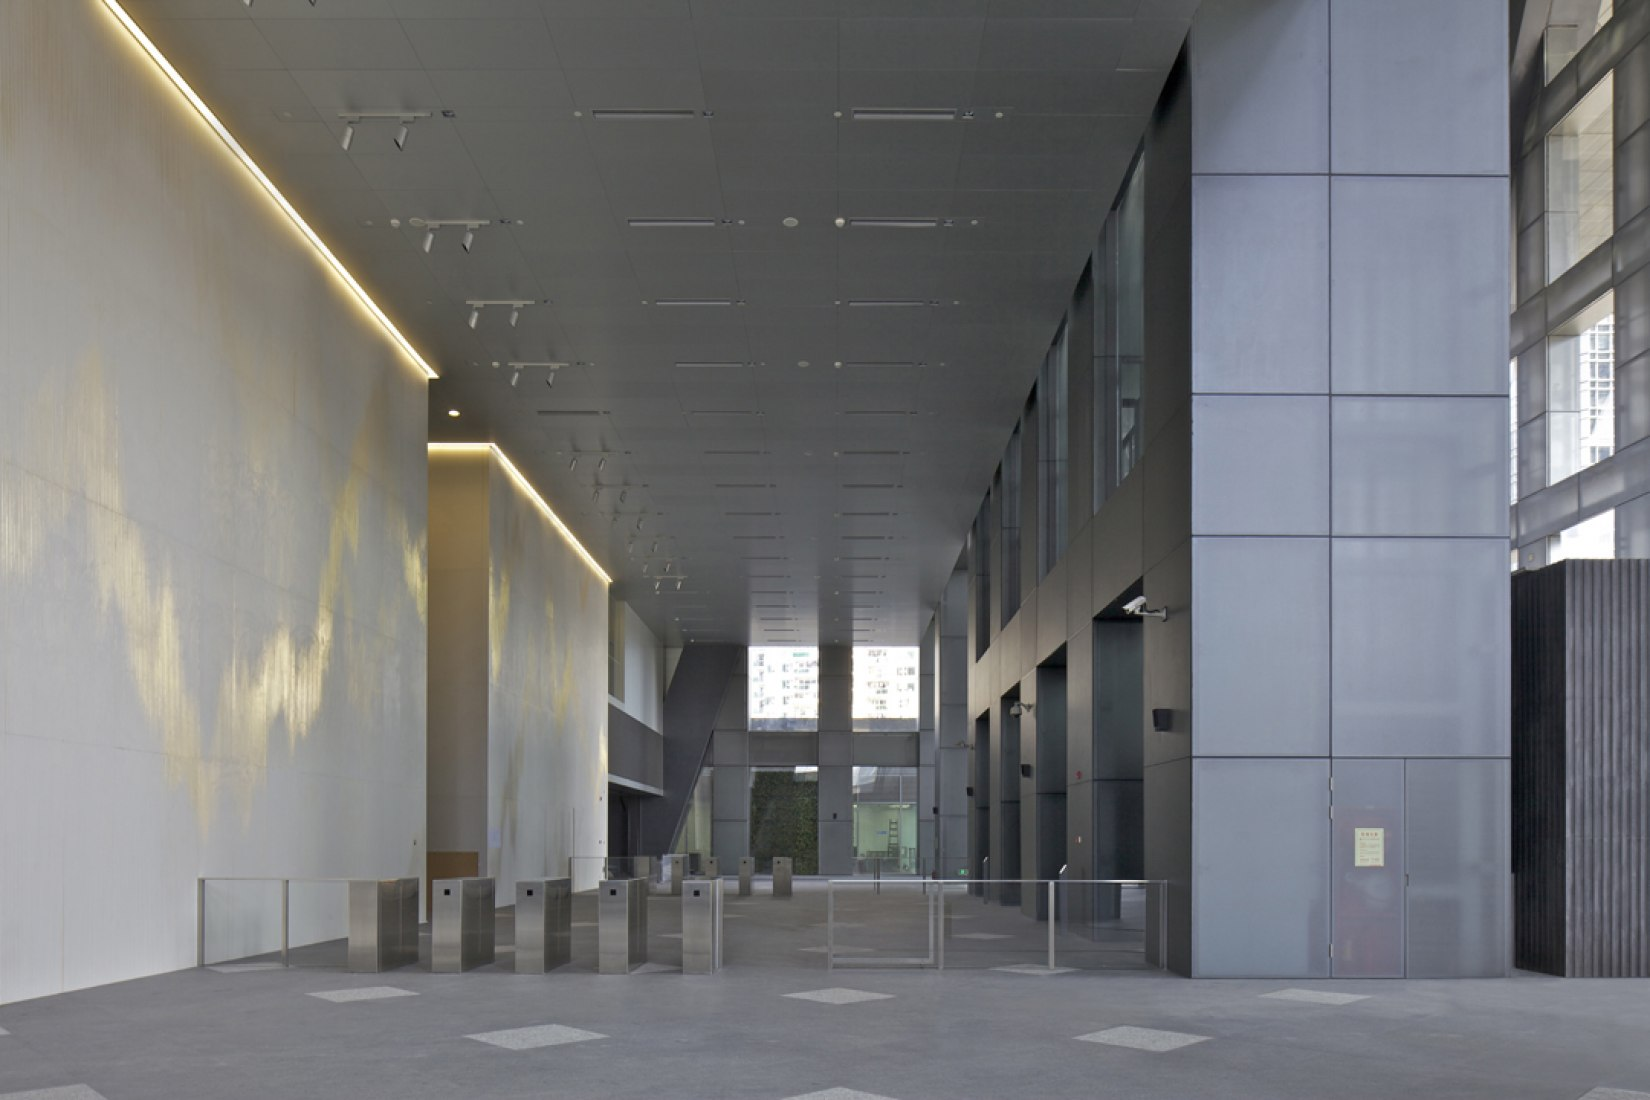 shenzhen stock exchange diagram ritetemp thermostat 8050c wiring oma completes the hq in china